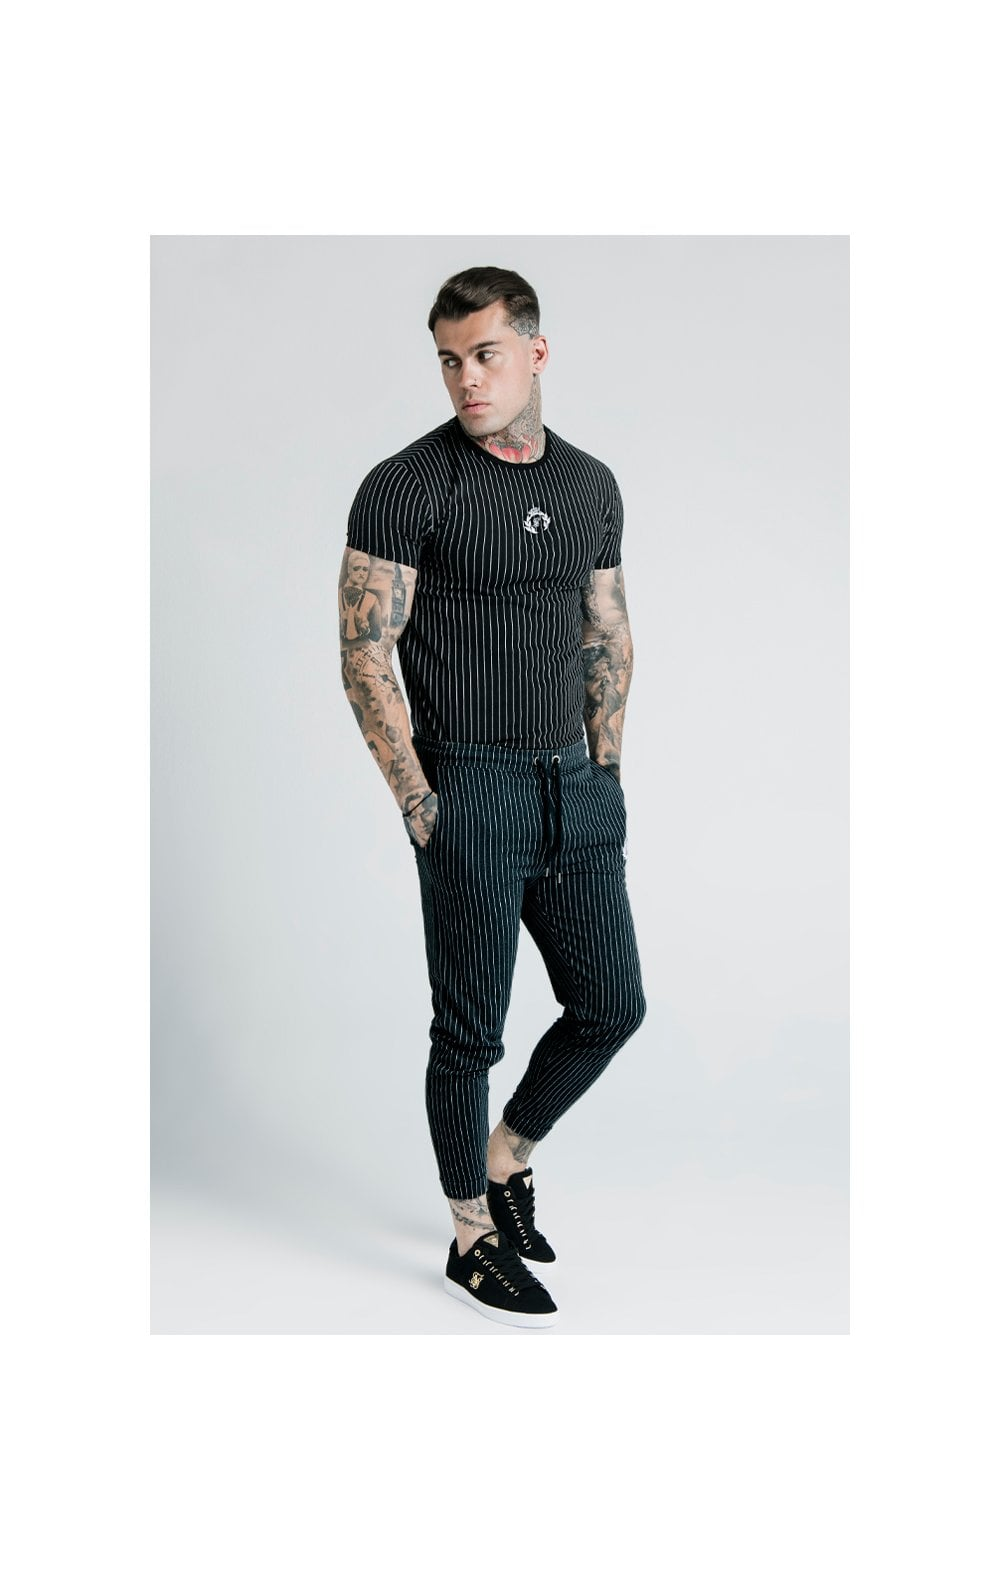 SikSilk X Dani Alves Trainings-T-Shirt Abgerundeter Saum - Schwarzweiss (6)